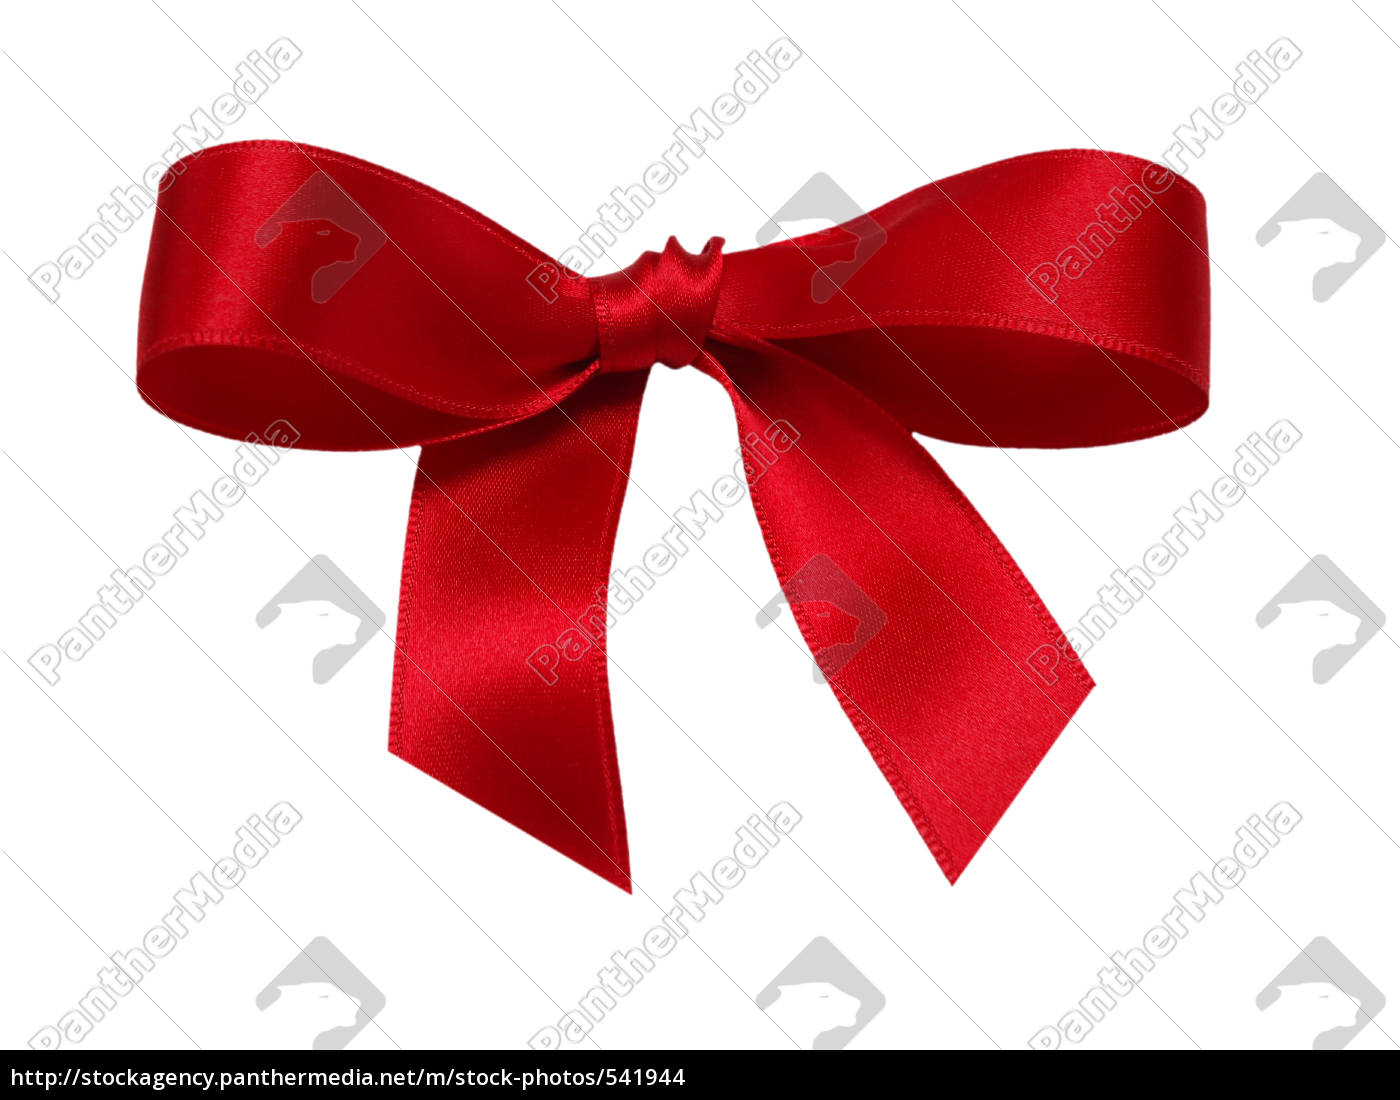 red, bow - 541944